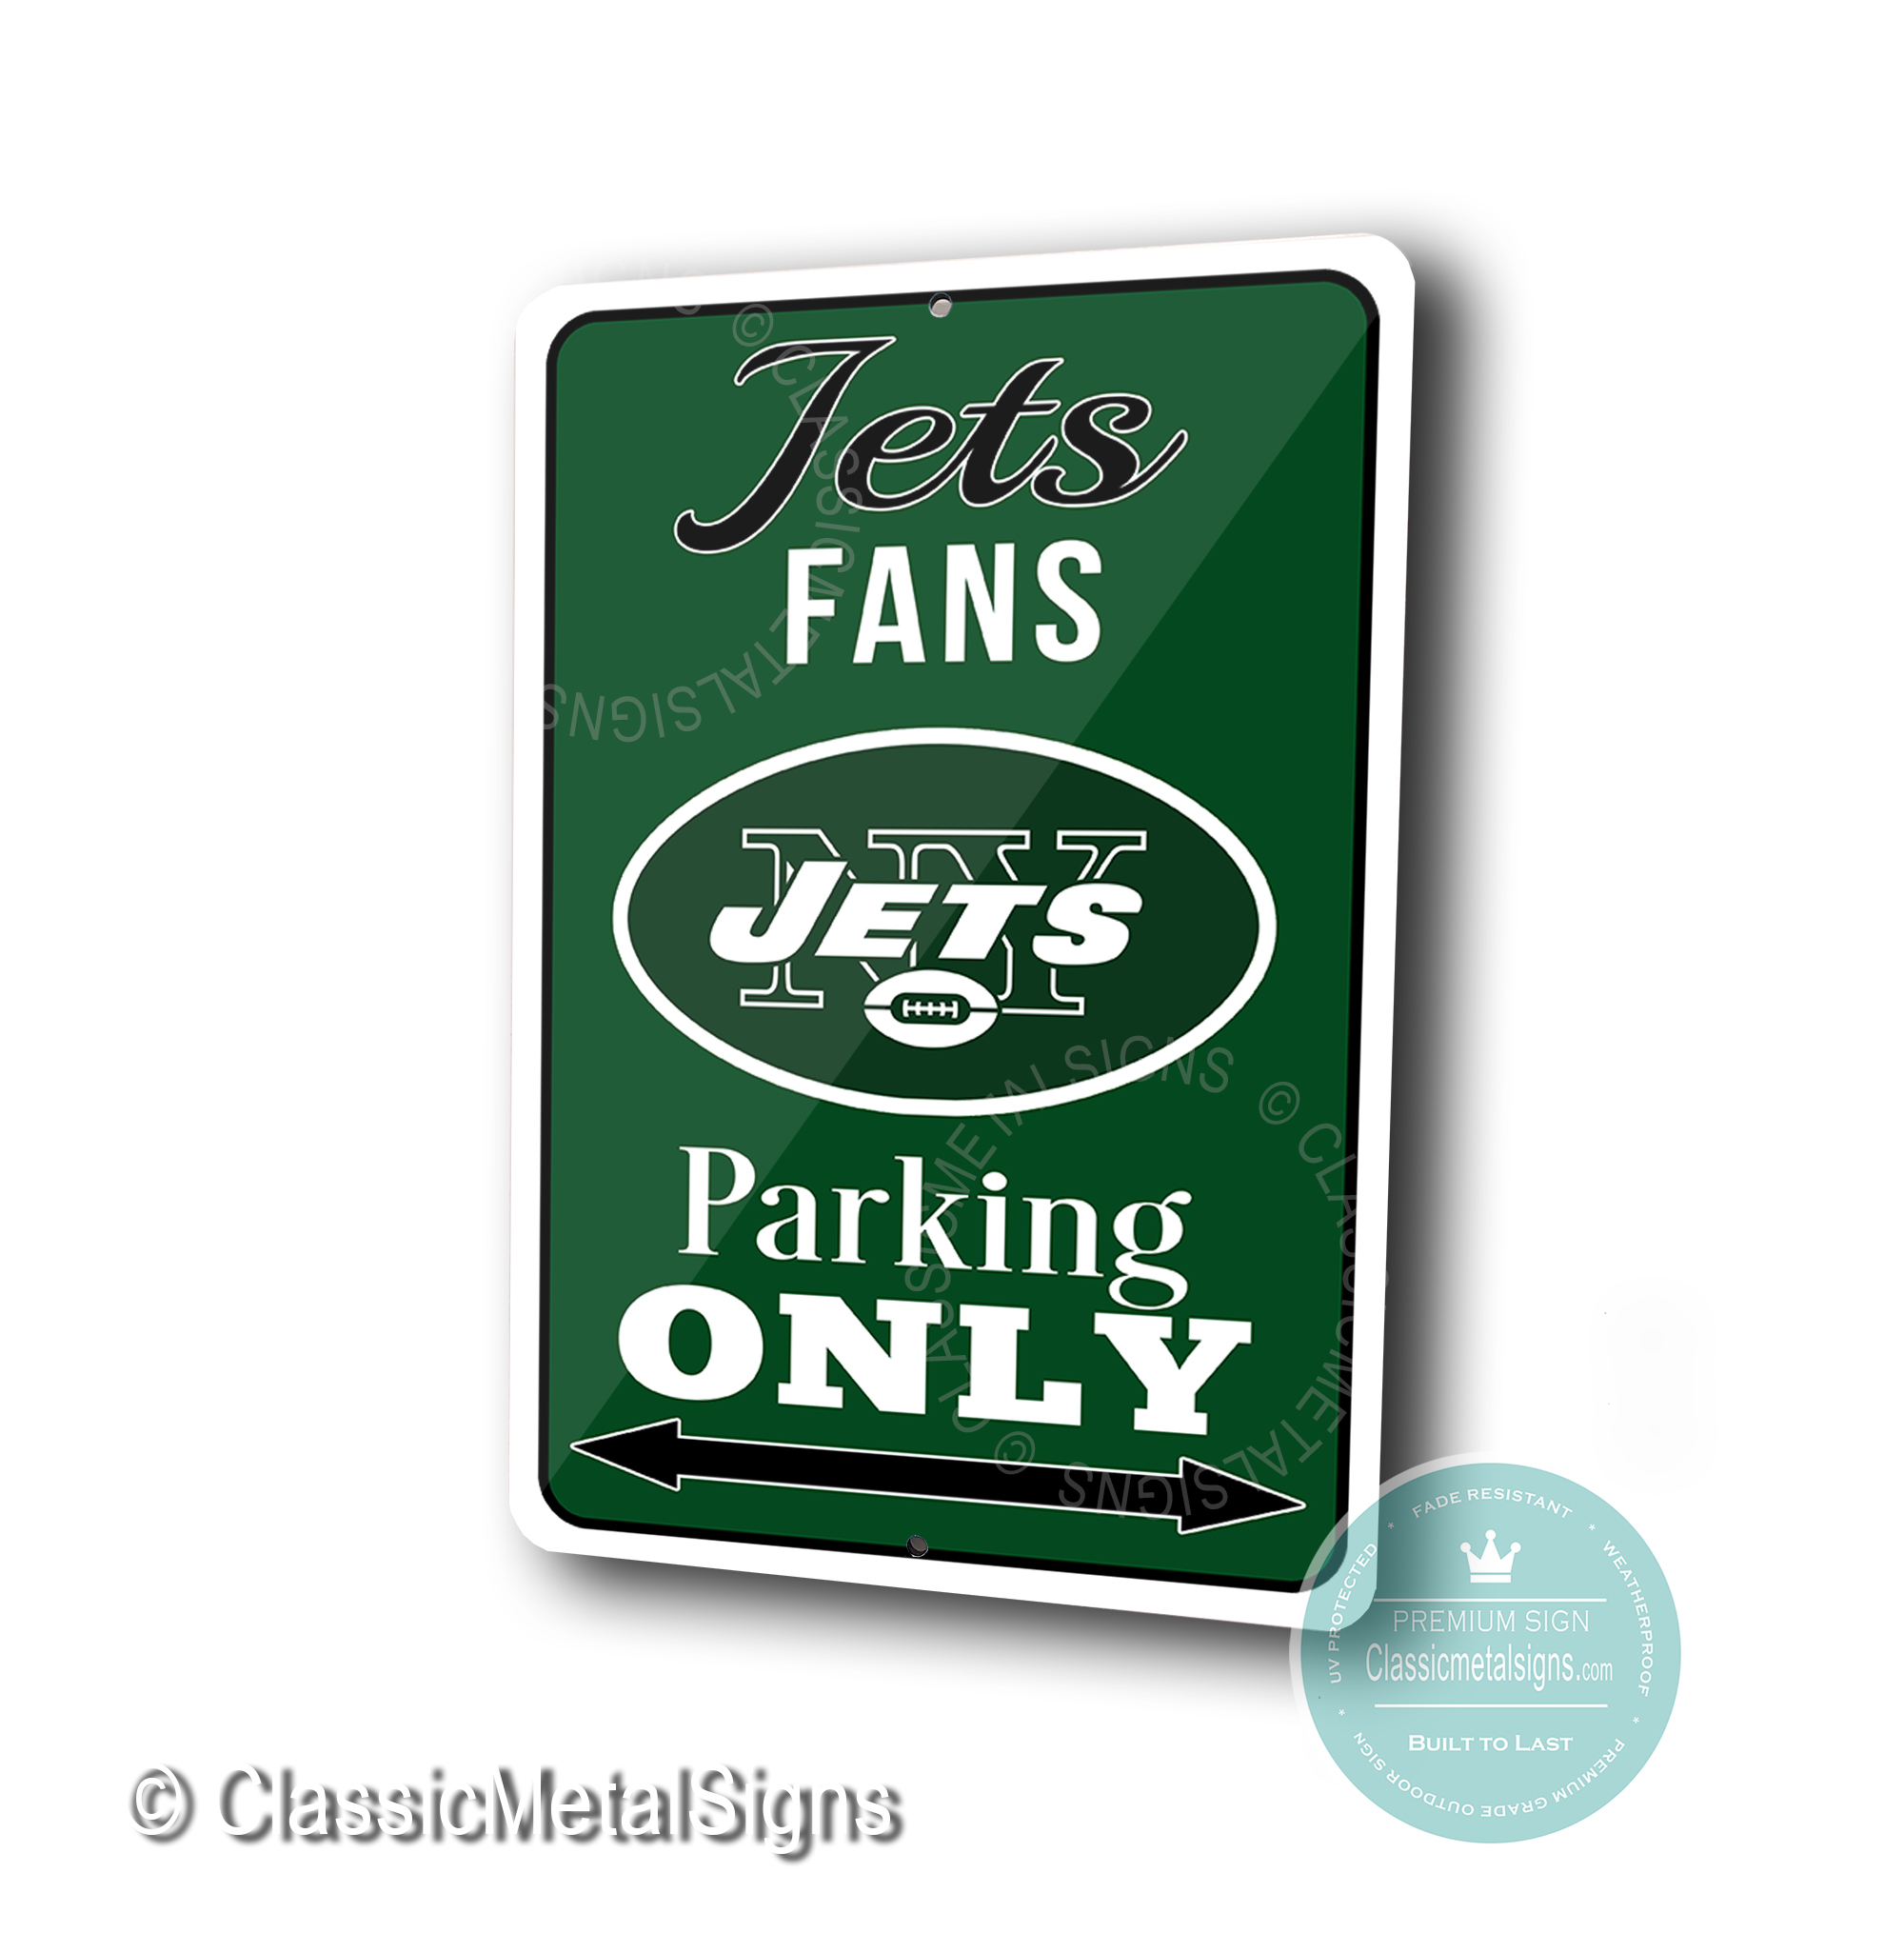 New York Jets Parking Only Signs